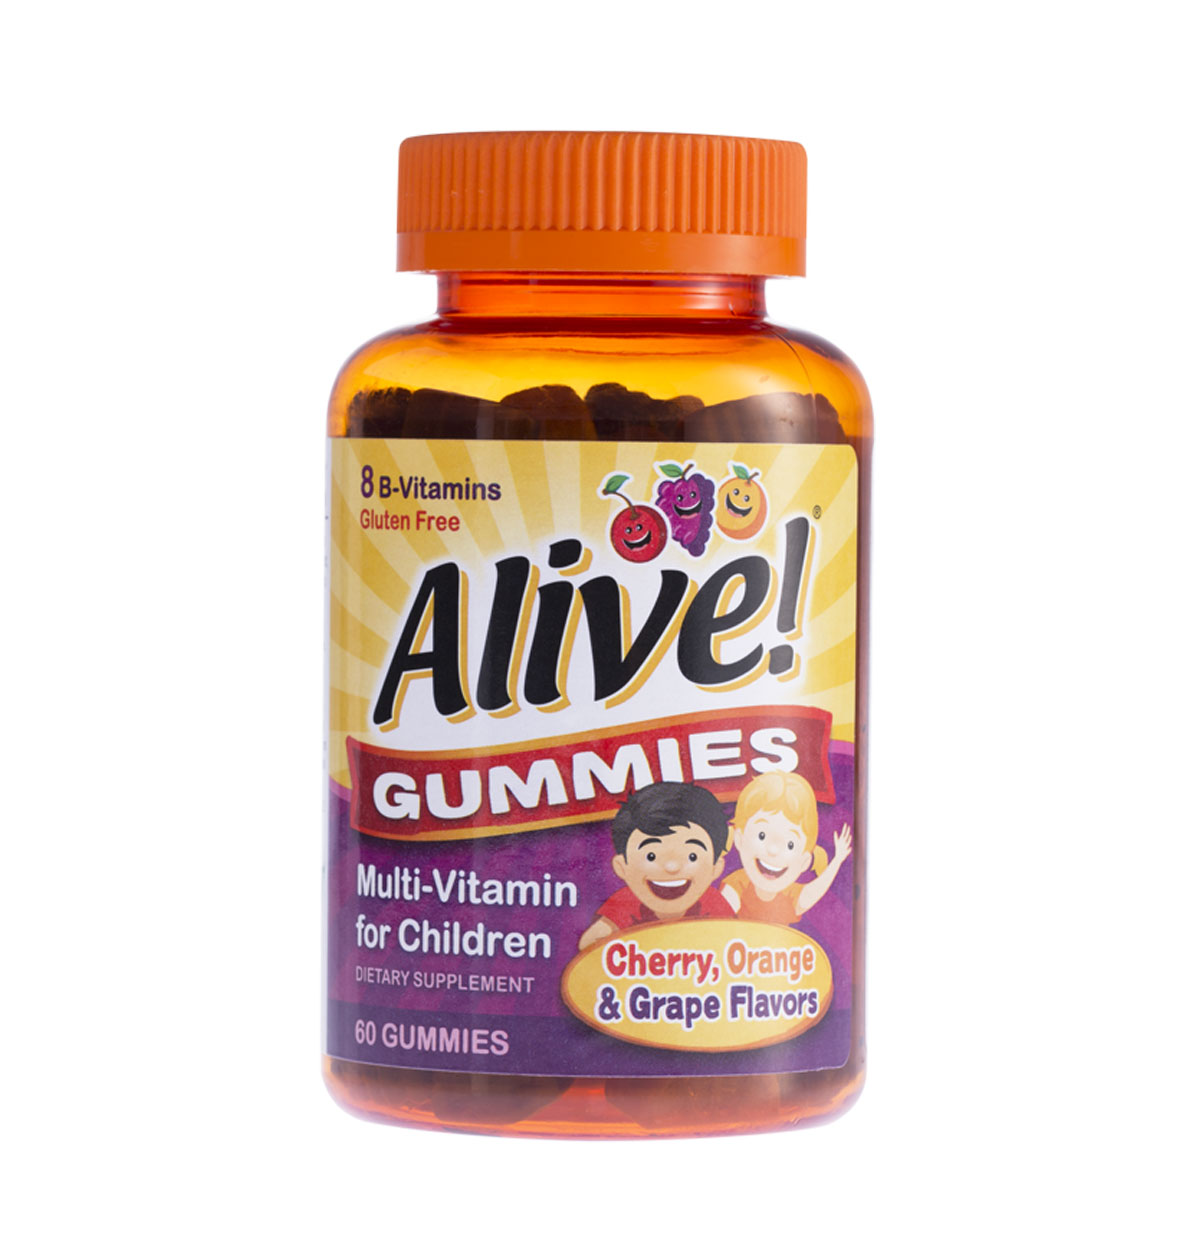 Alive! Multi-Vitamin for Children ขนาด 60 กัมมี่